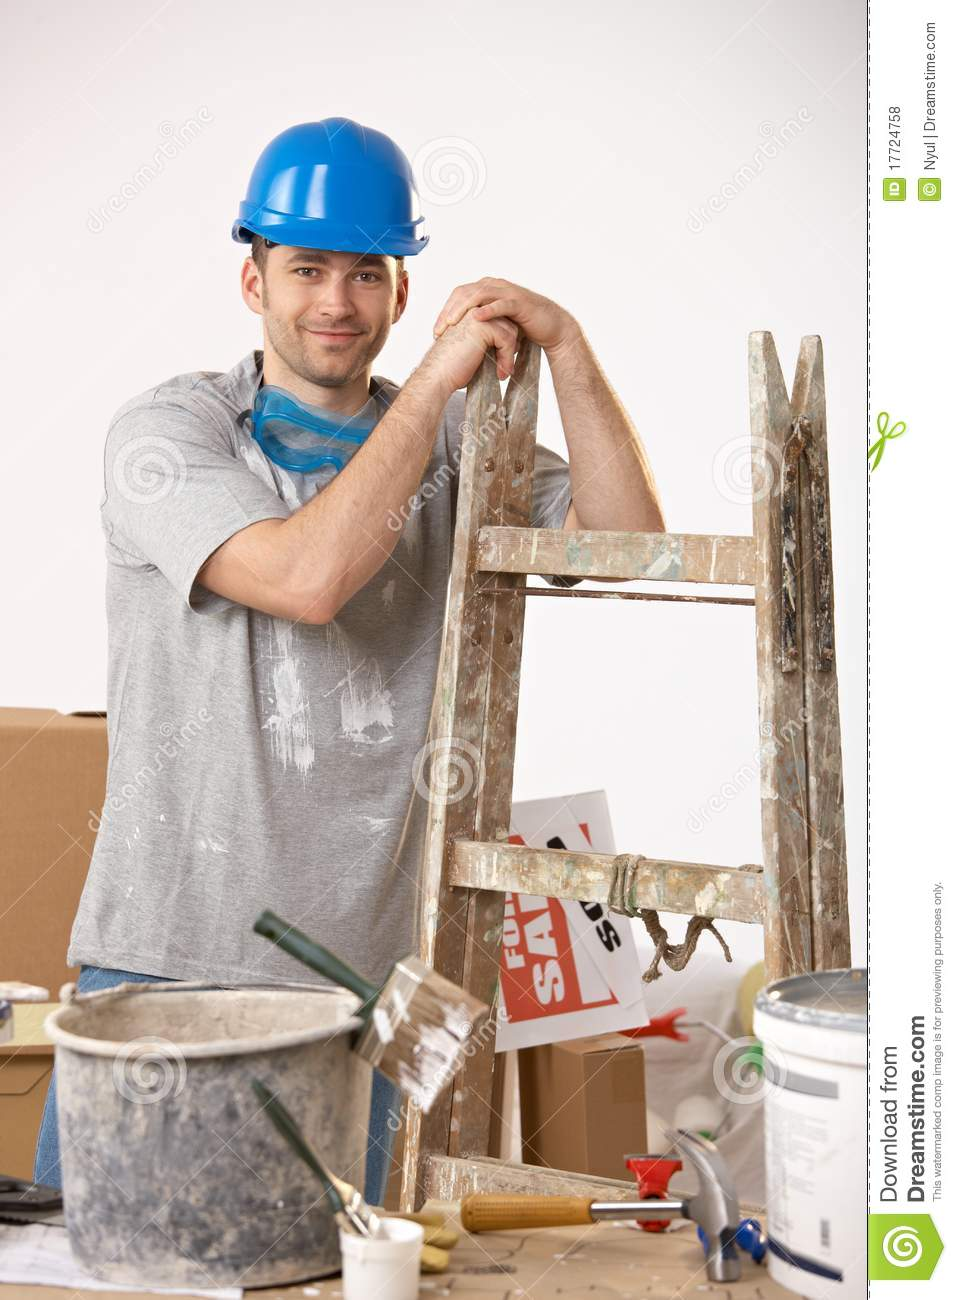 young guy painting house royalty free stock photos image 17724758